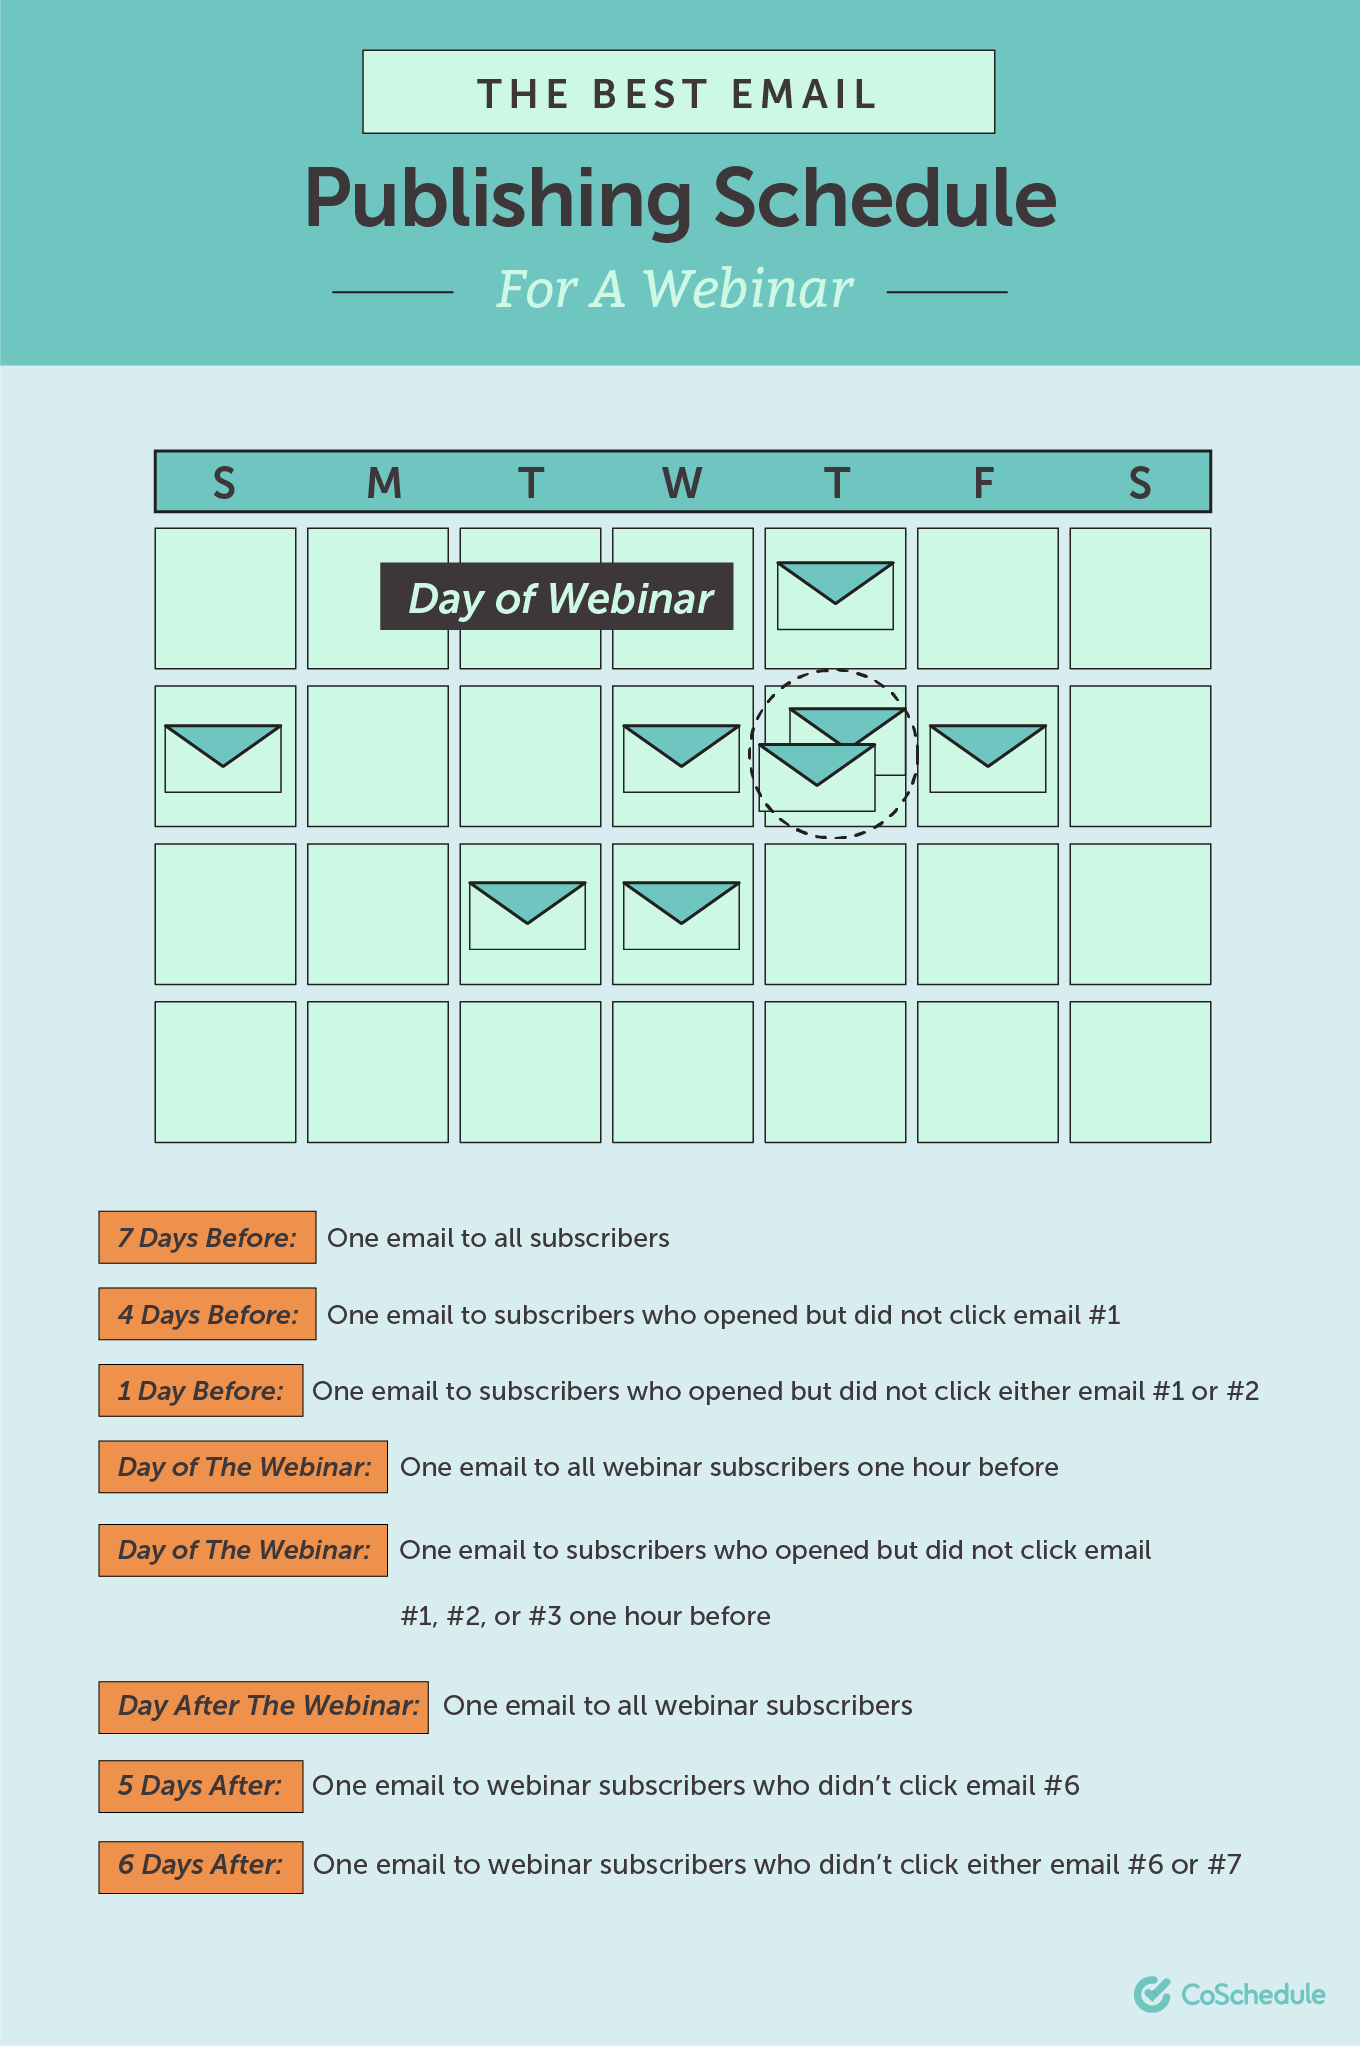 Best email publishing schedule for a webinar